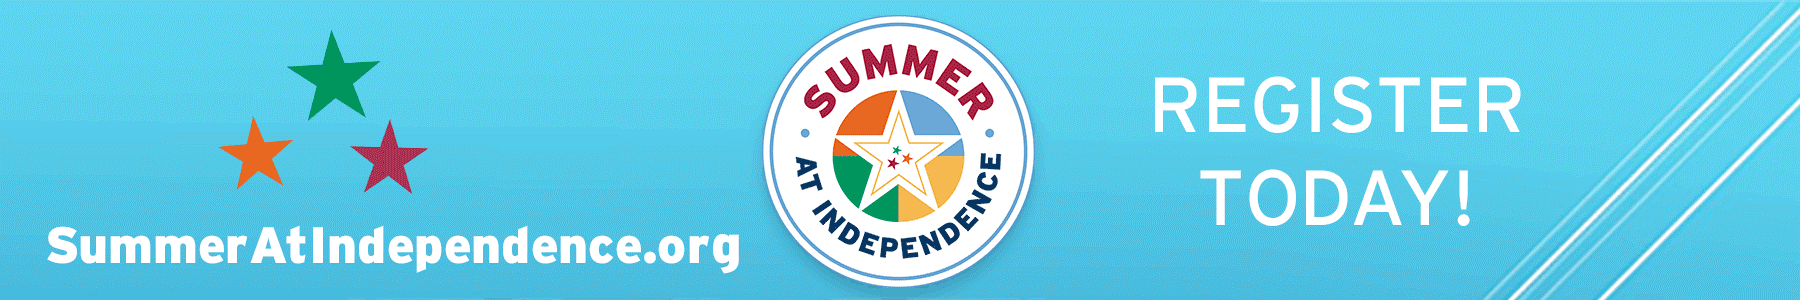 Summer registration logo